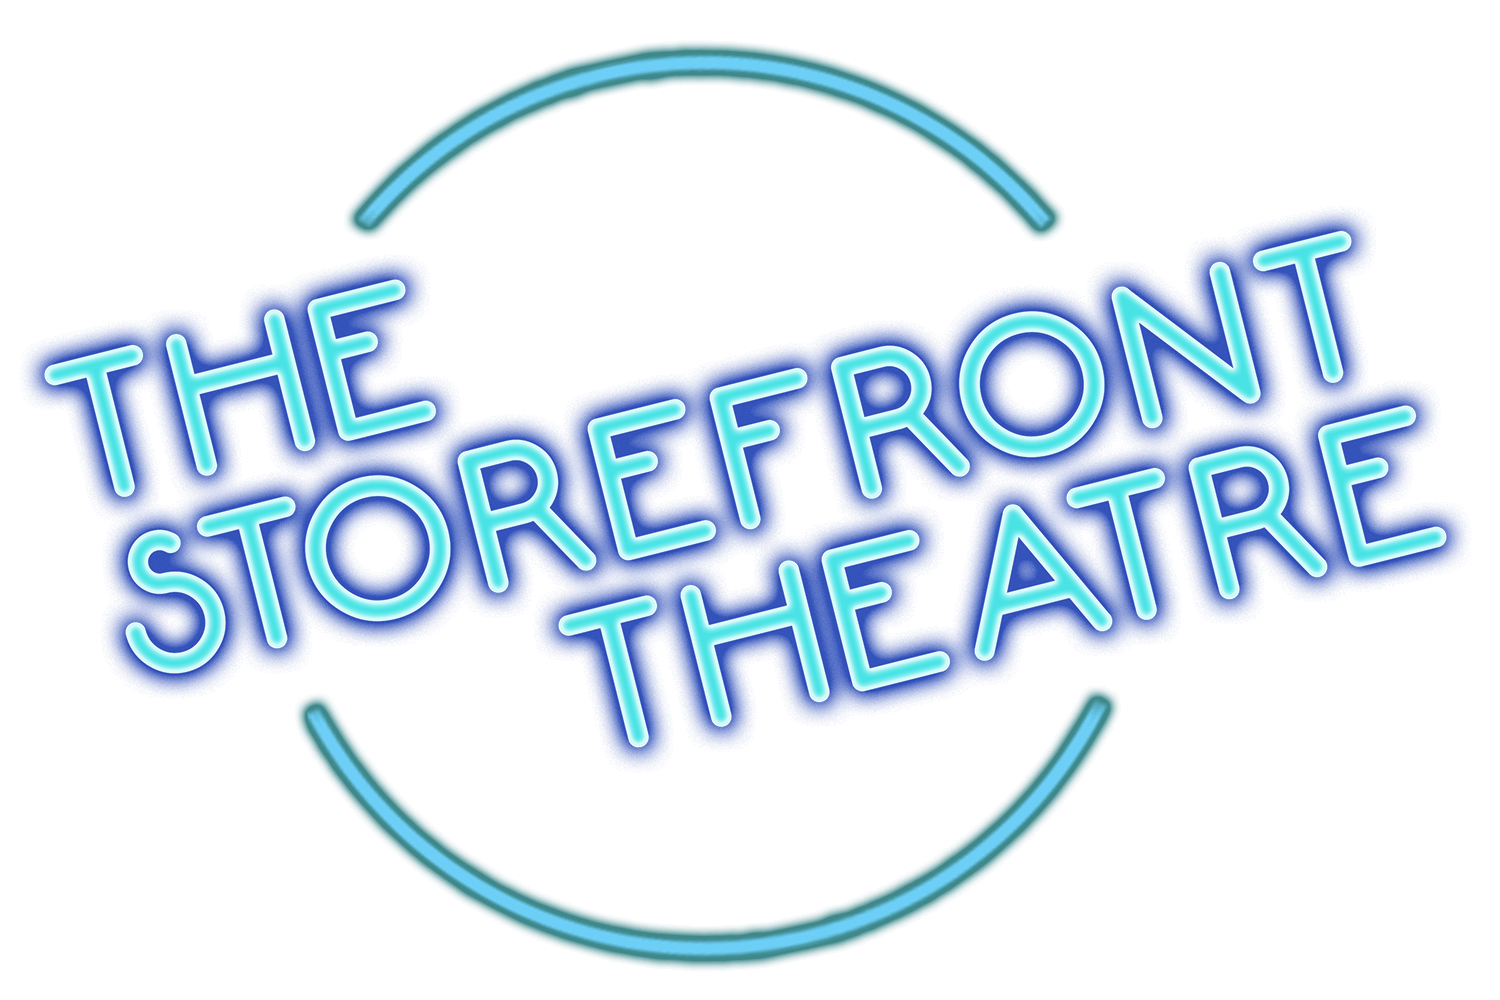 The Storefront Theatre